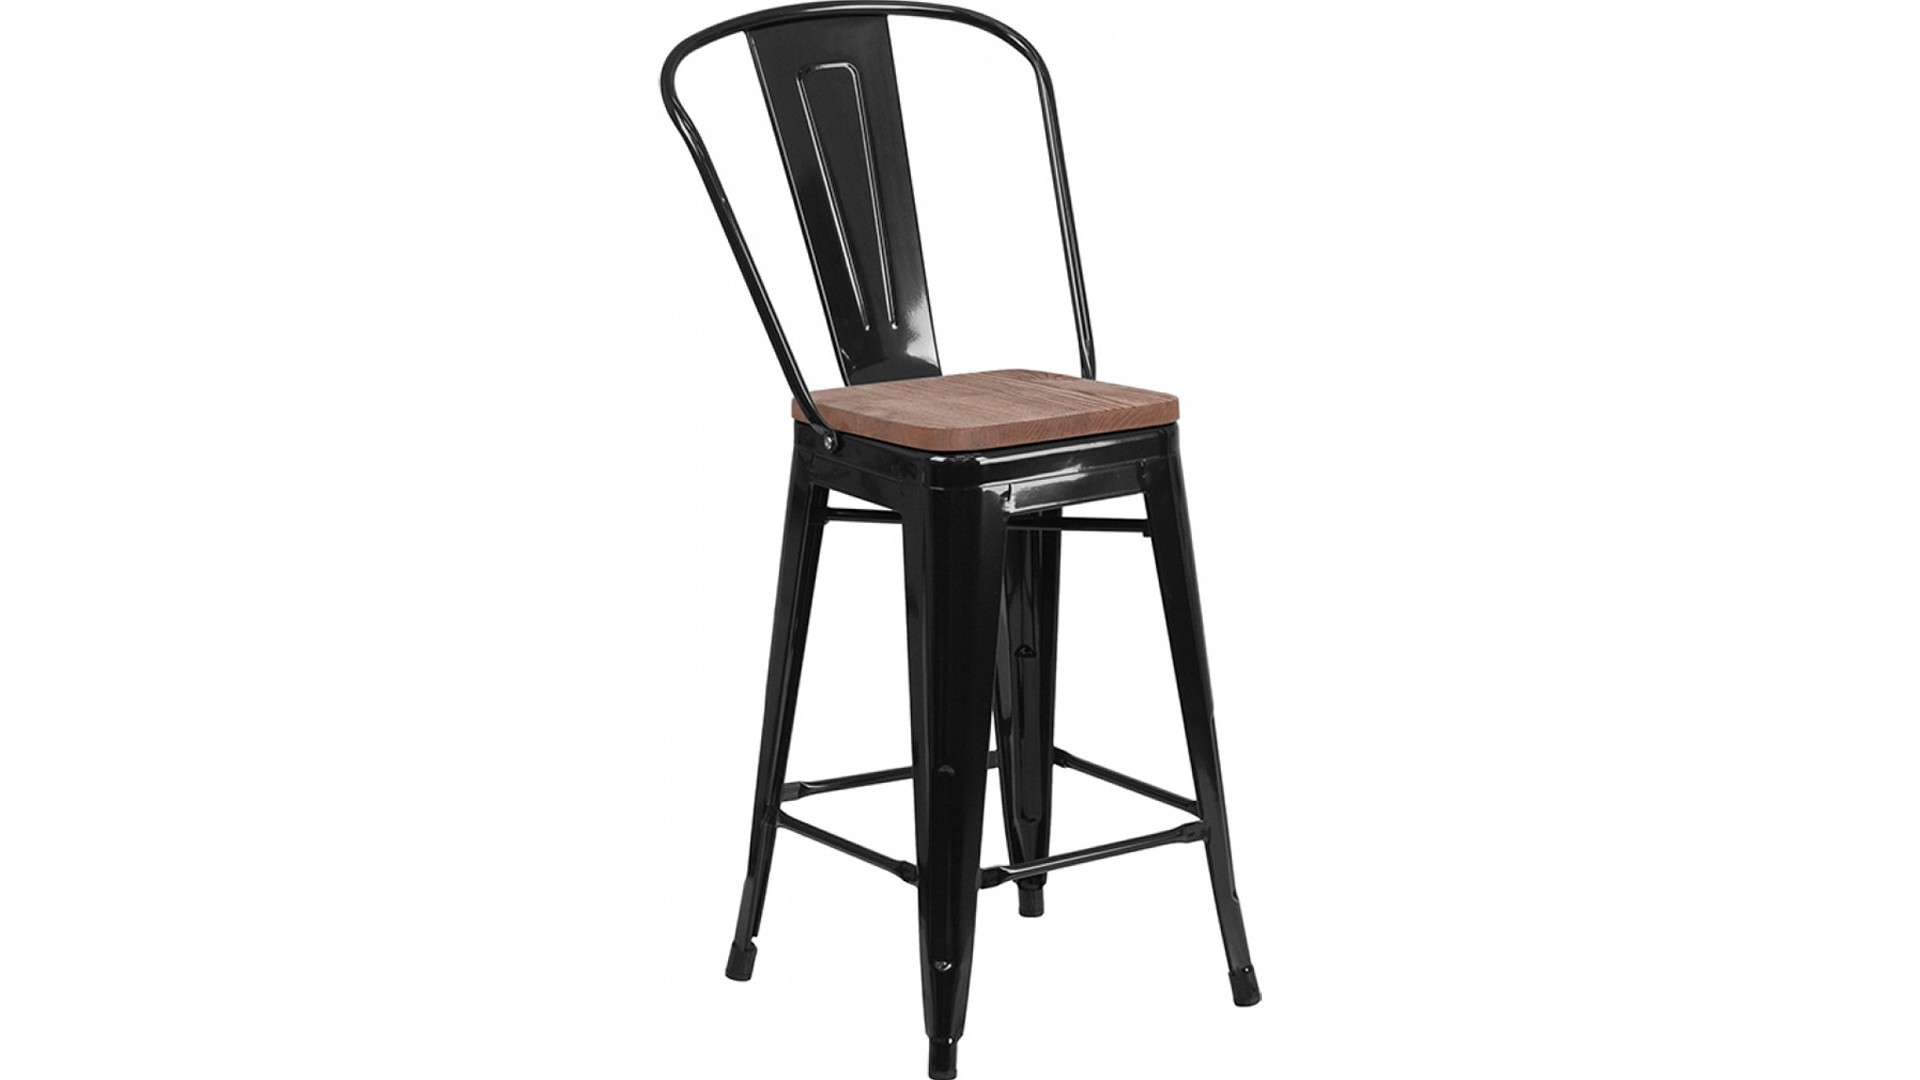 24 Inch Metal Bar Stool with Wood Seat (Black)